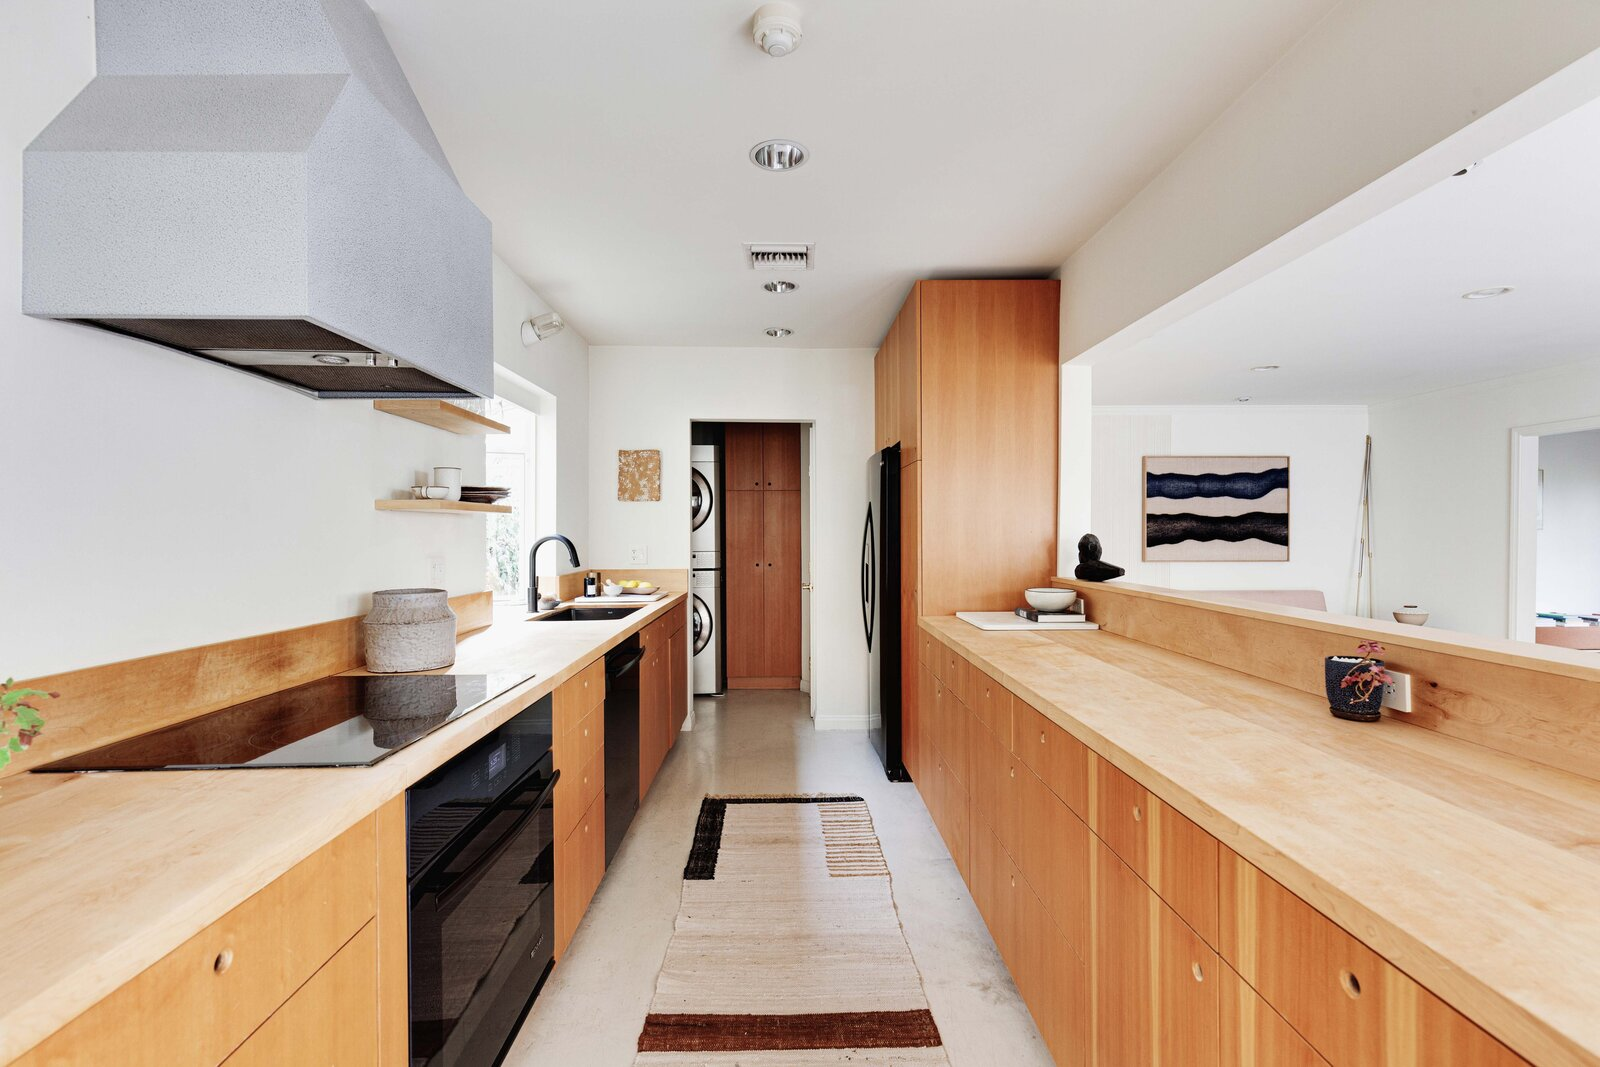 On the opposite side of the home, a galley-style kitchen features a large pass-through connecting to the living room. Handmade wood cabinetry, open shelving, and updated appliances round out the space.  Photo 5 of 16 in Listed at $950K, This Clean-Lined Cottage in Los Angeles Is a Fresh Take on City Living